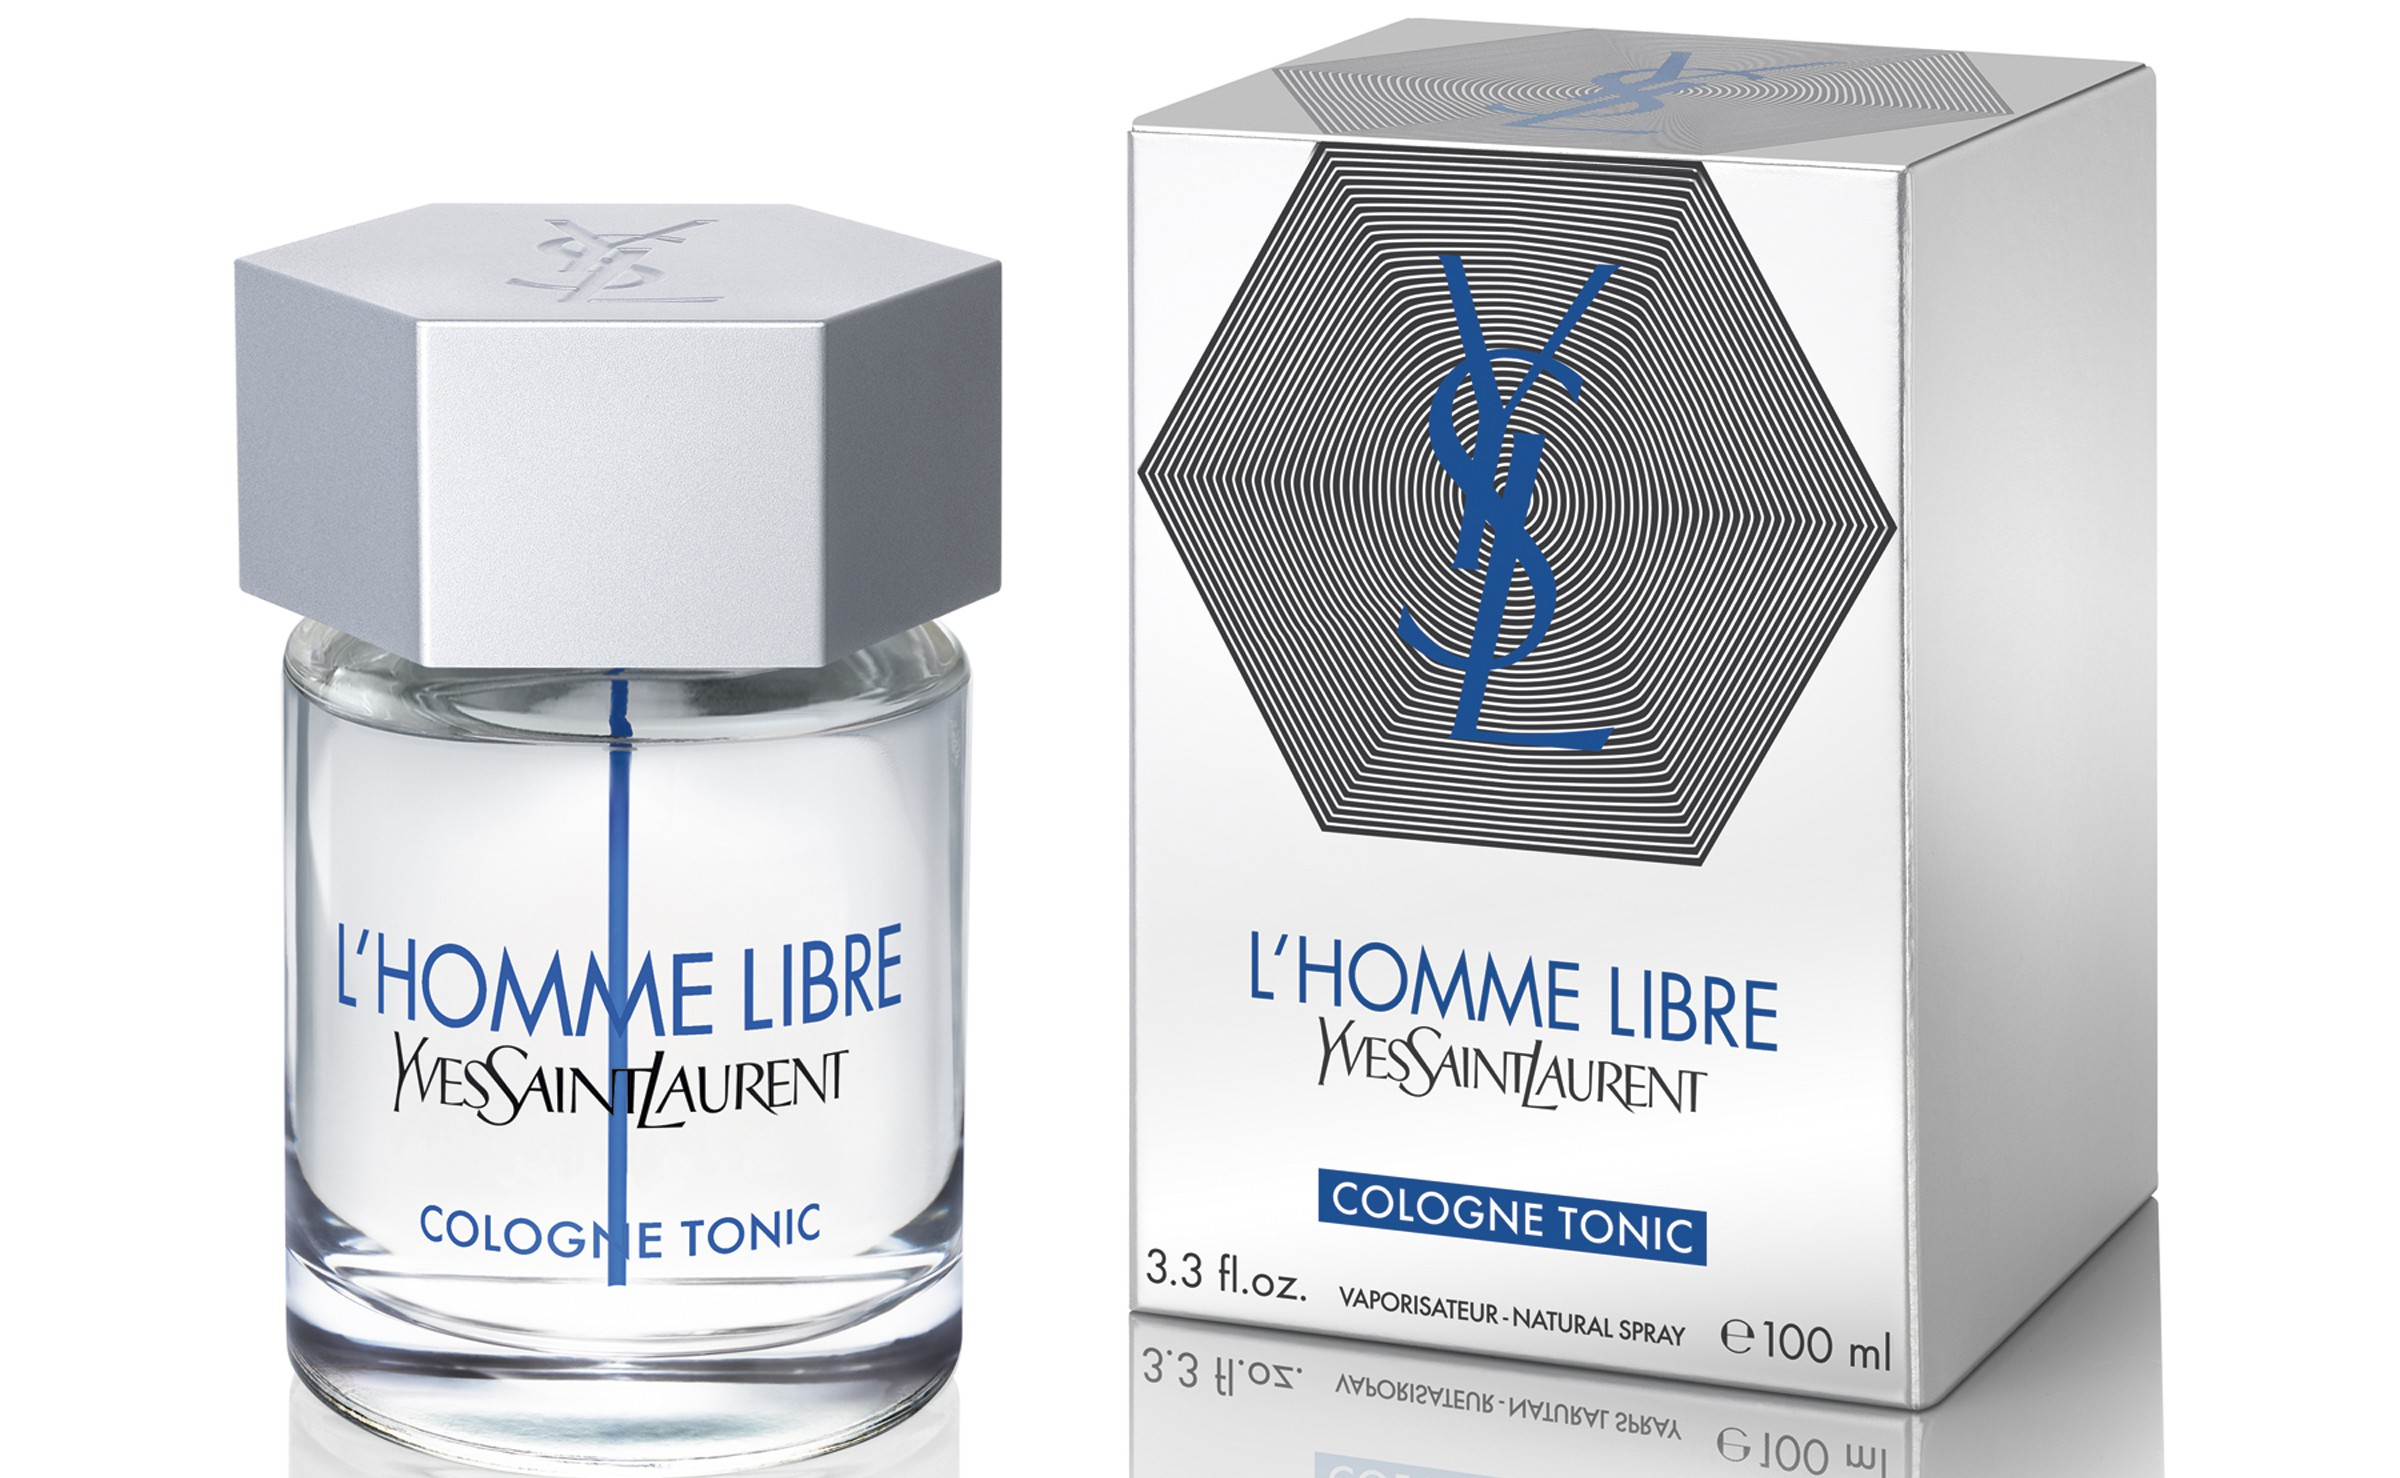 Yves Saint Laurent L'Homme Libre Cologne Tonic аромат для мужчин